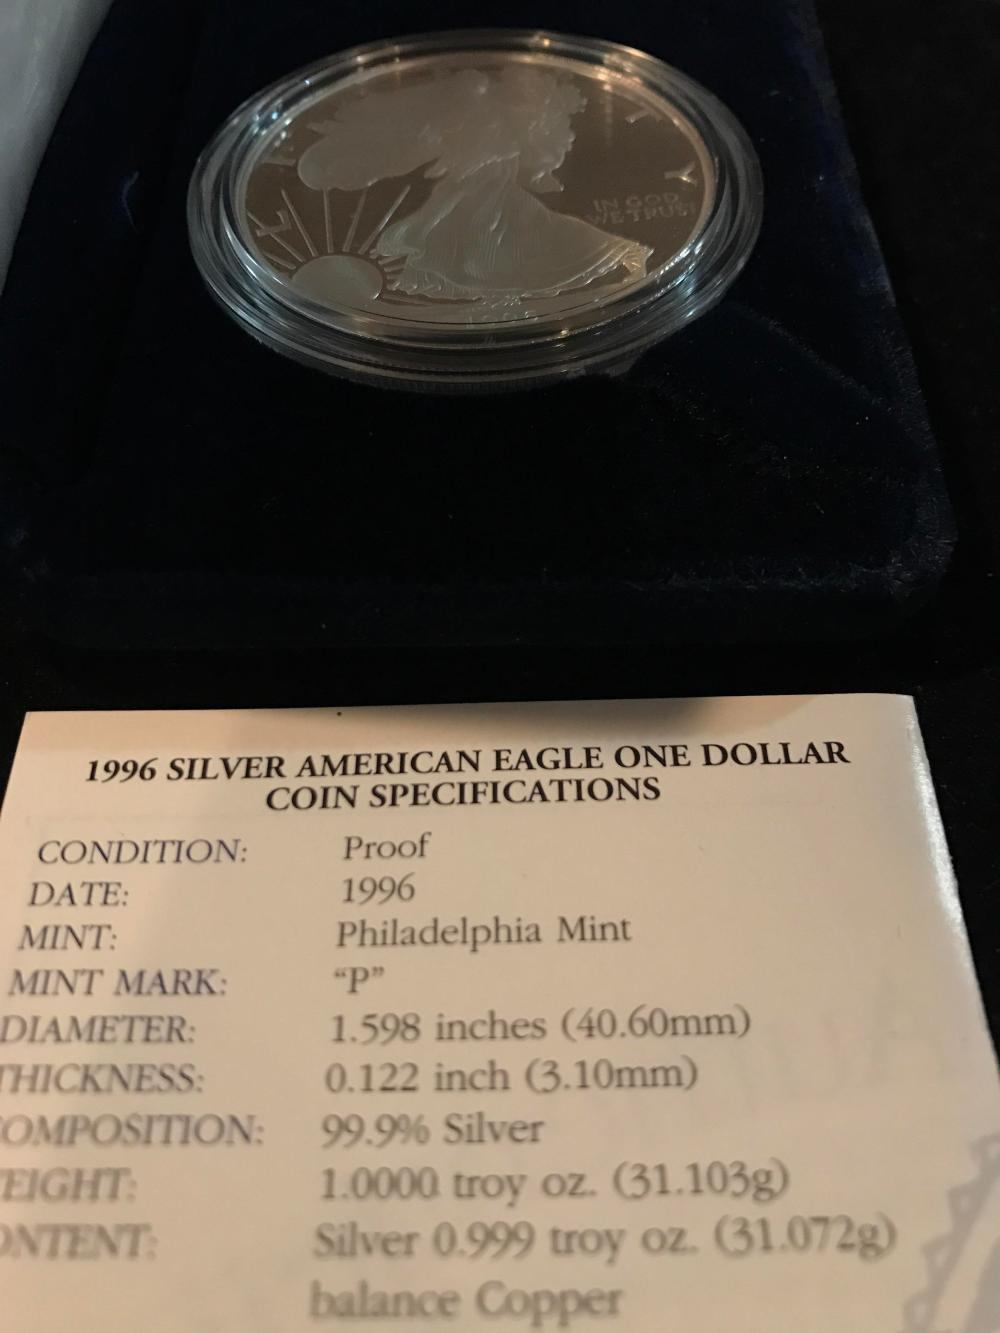 1996 silver American eagle one dollar coin mint